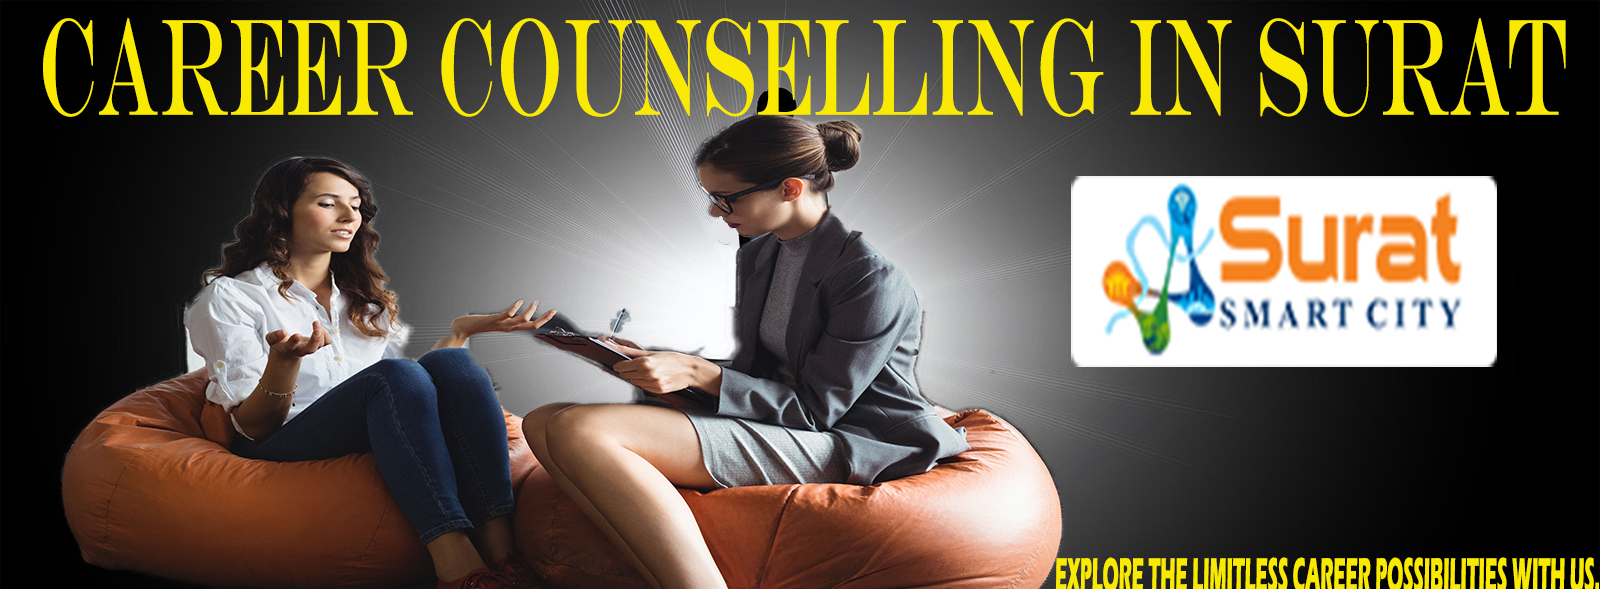 career counselling in surat